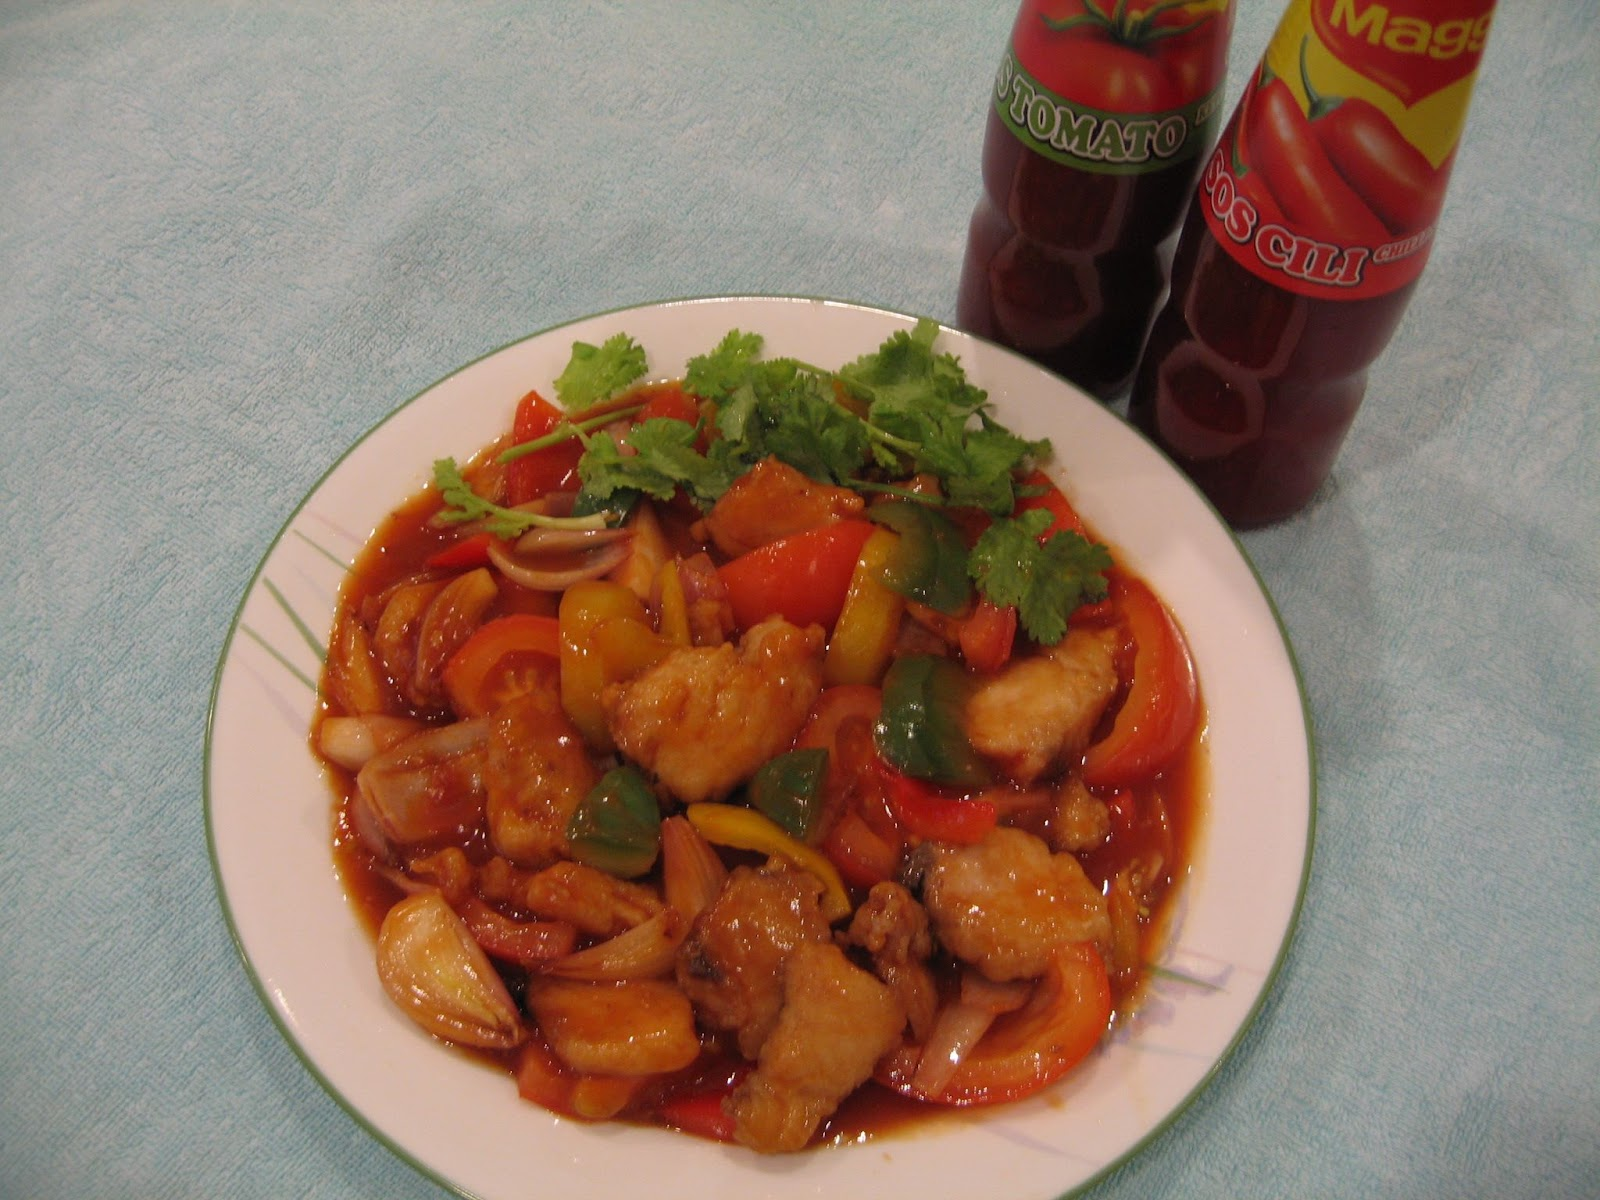 Ah Beh's Recipes: Fried fish fillet in Tomato sauce